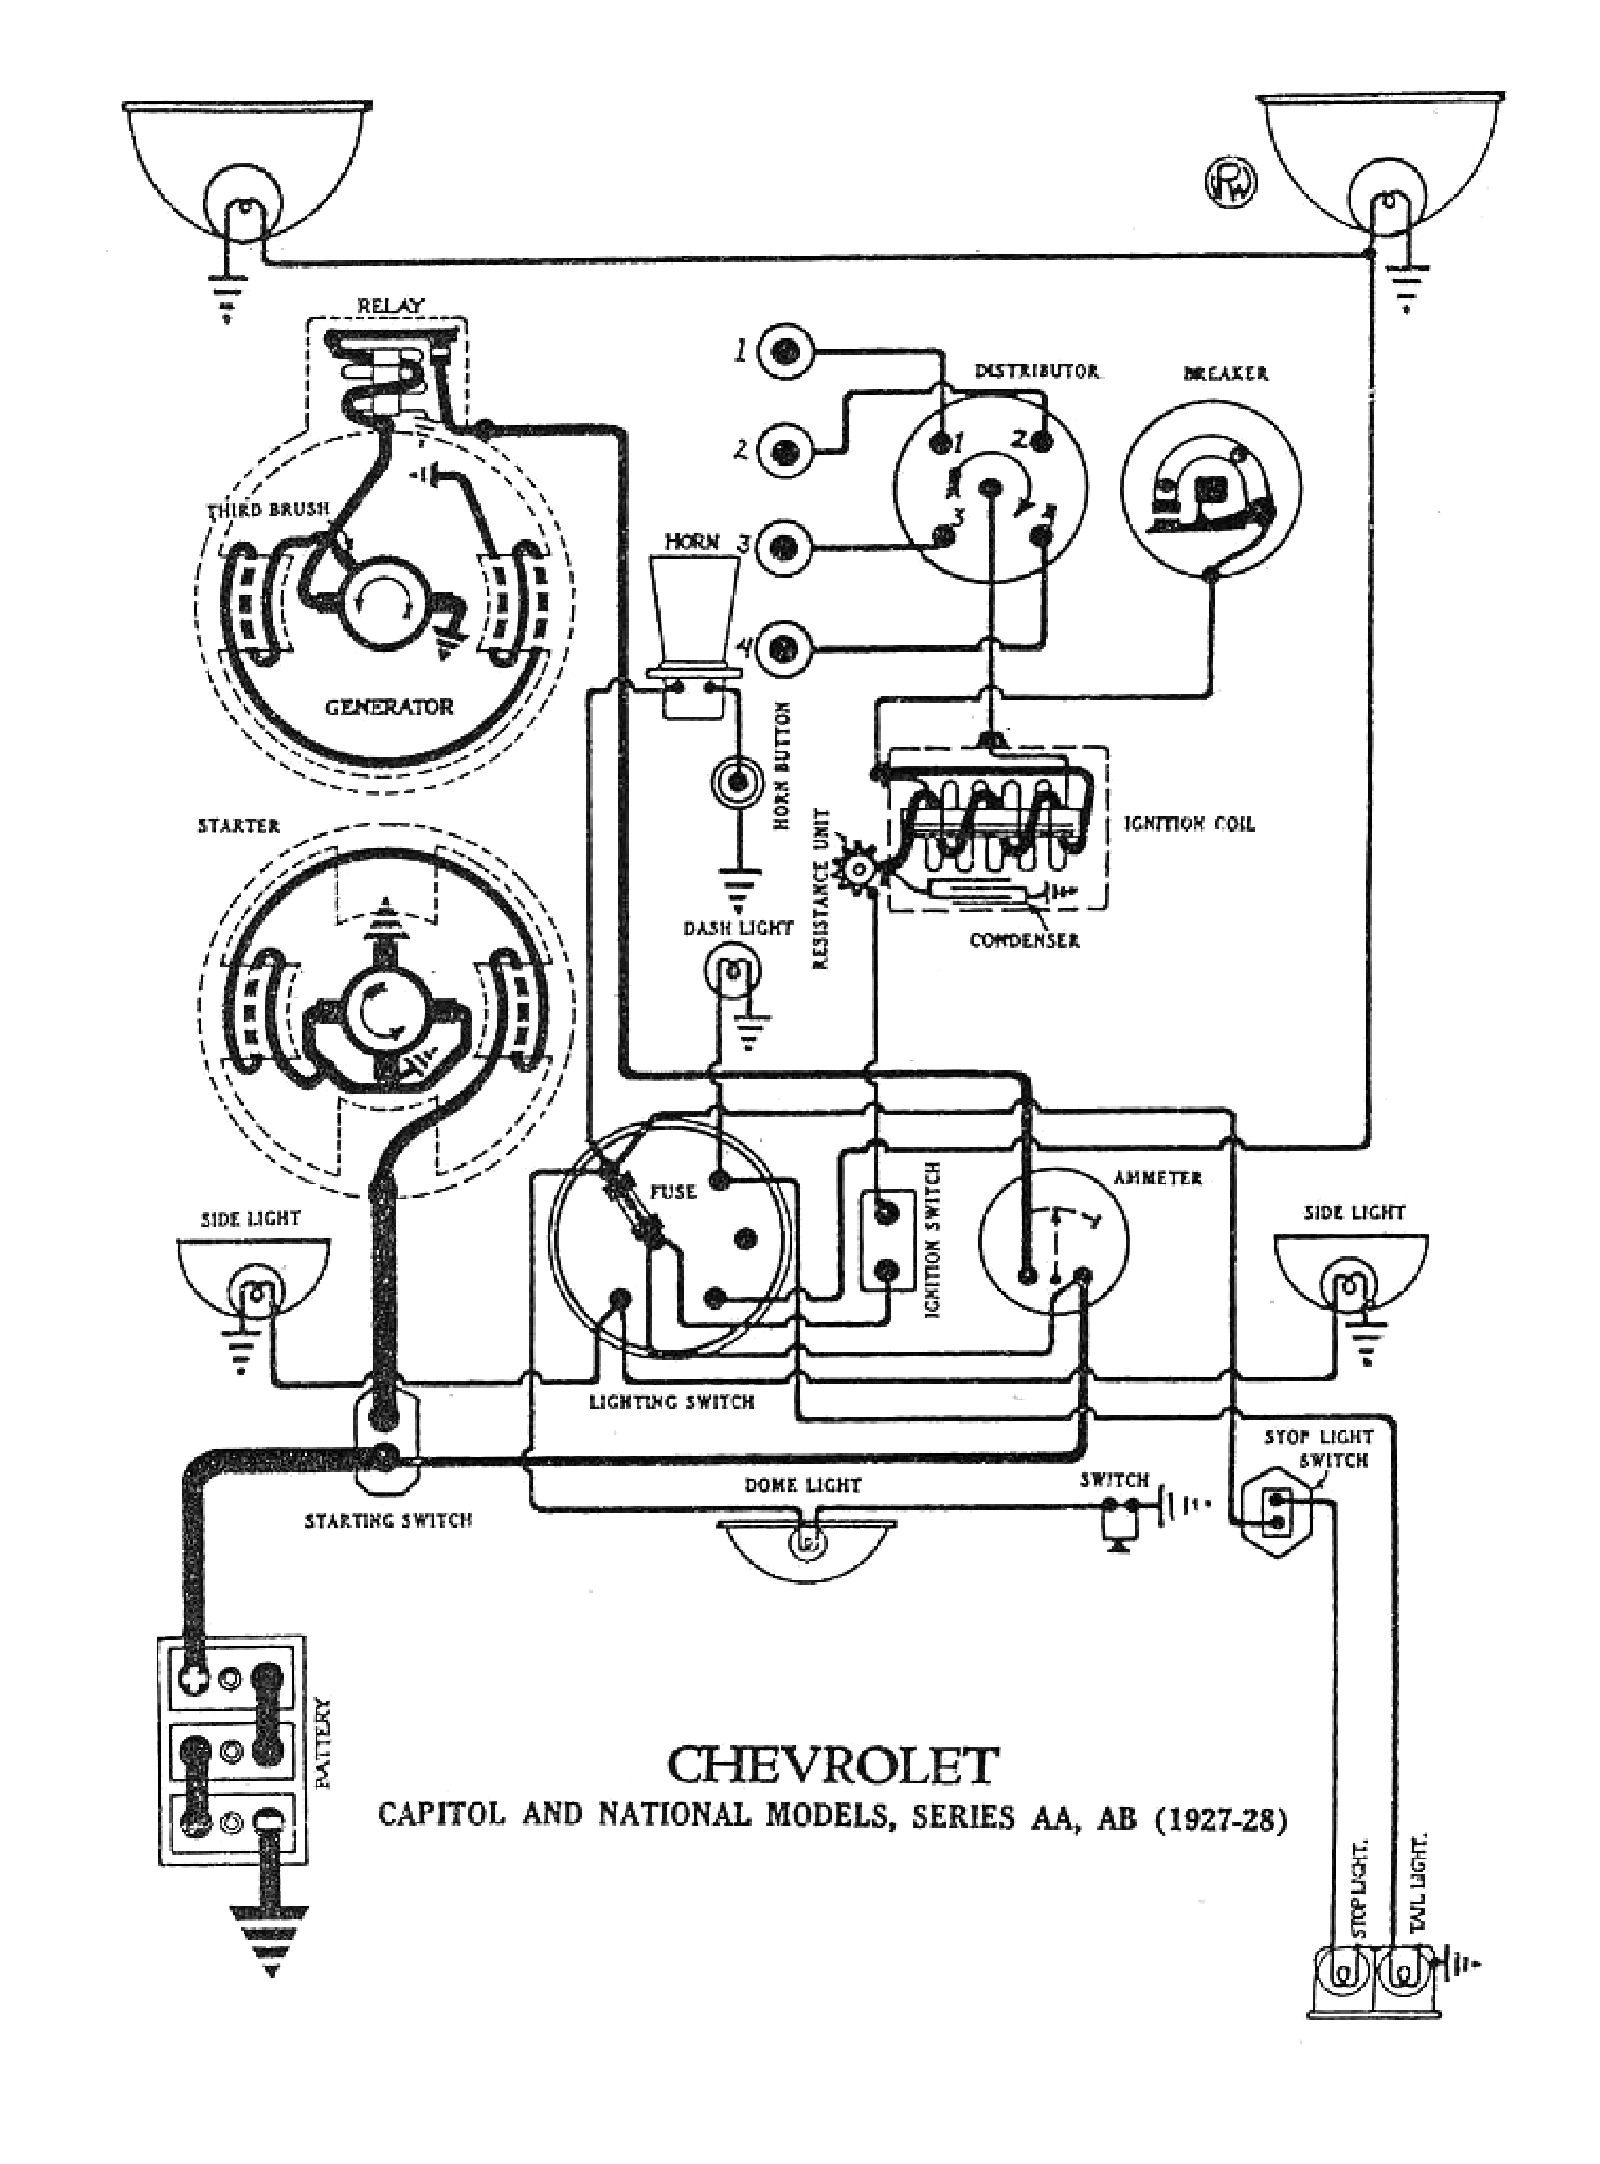 [WRG-9165] Wiring Diagram For 1953 Ford Jubilee